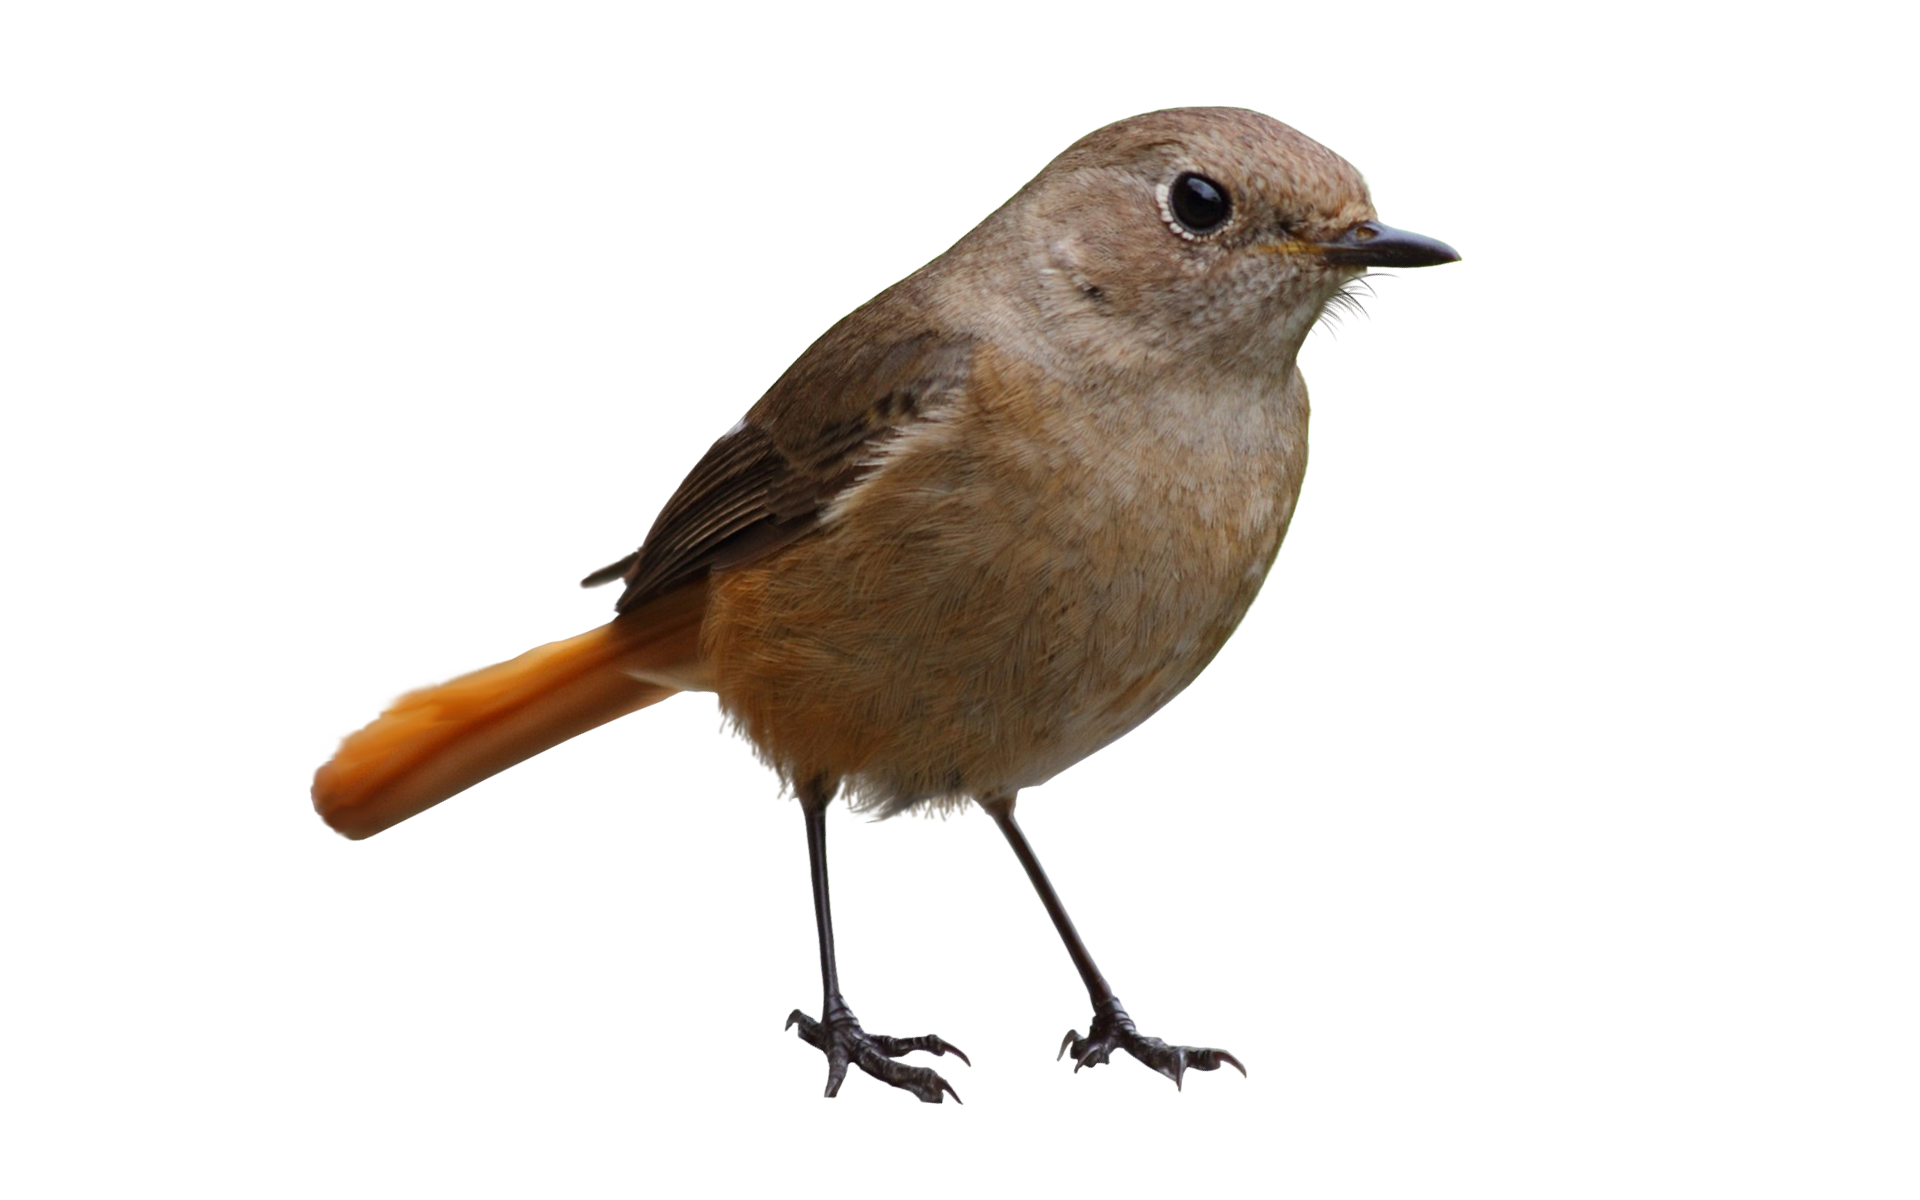 Gray Bird Png #3502.